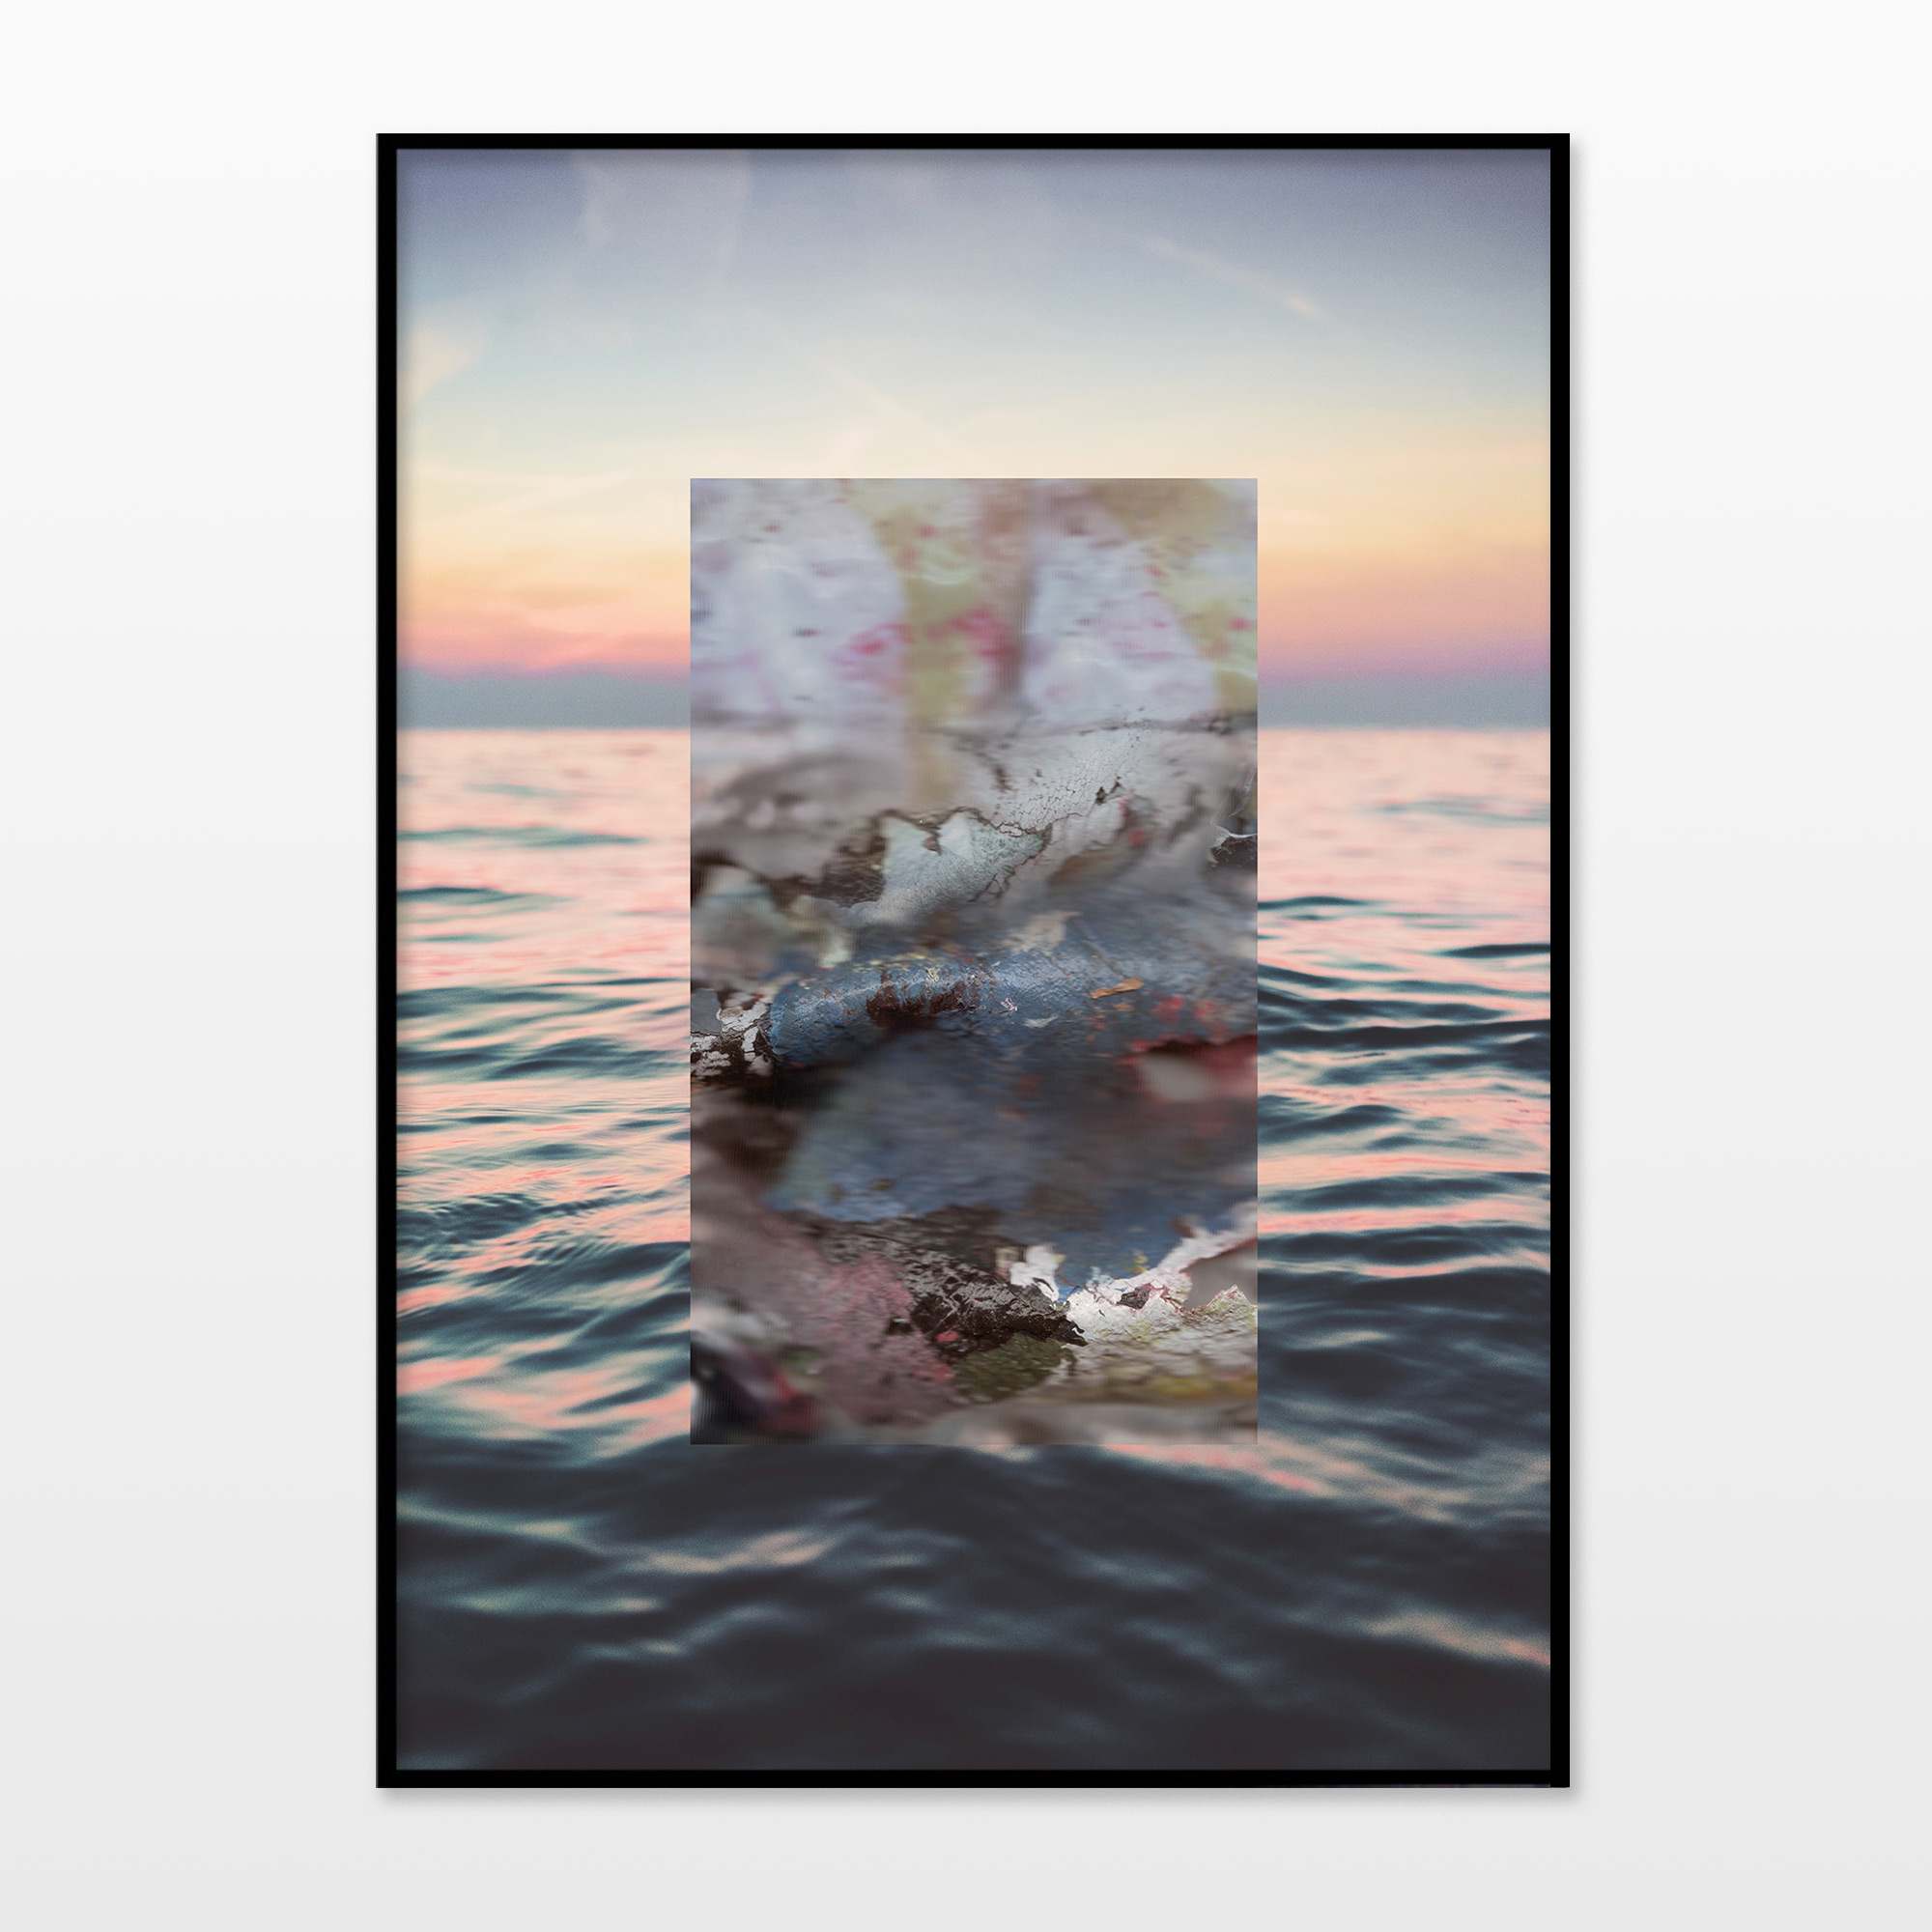 posters-prints, giclee-print, aesthetic, colorful, figurative, graphical, landscape, pop, nature, oceans, sailing, sky, blue, pink, yellow, ink, paper, contemporary-art, interior, interior-design, modern, modern-art, photorealistic, sea, water, Buy original high quality art. Paintings, drawings, limited edition prints & posters by talented artists.